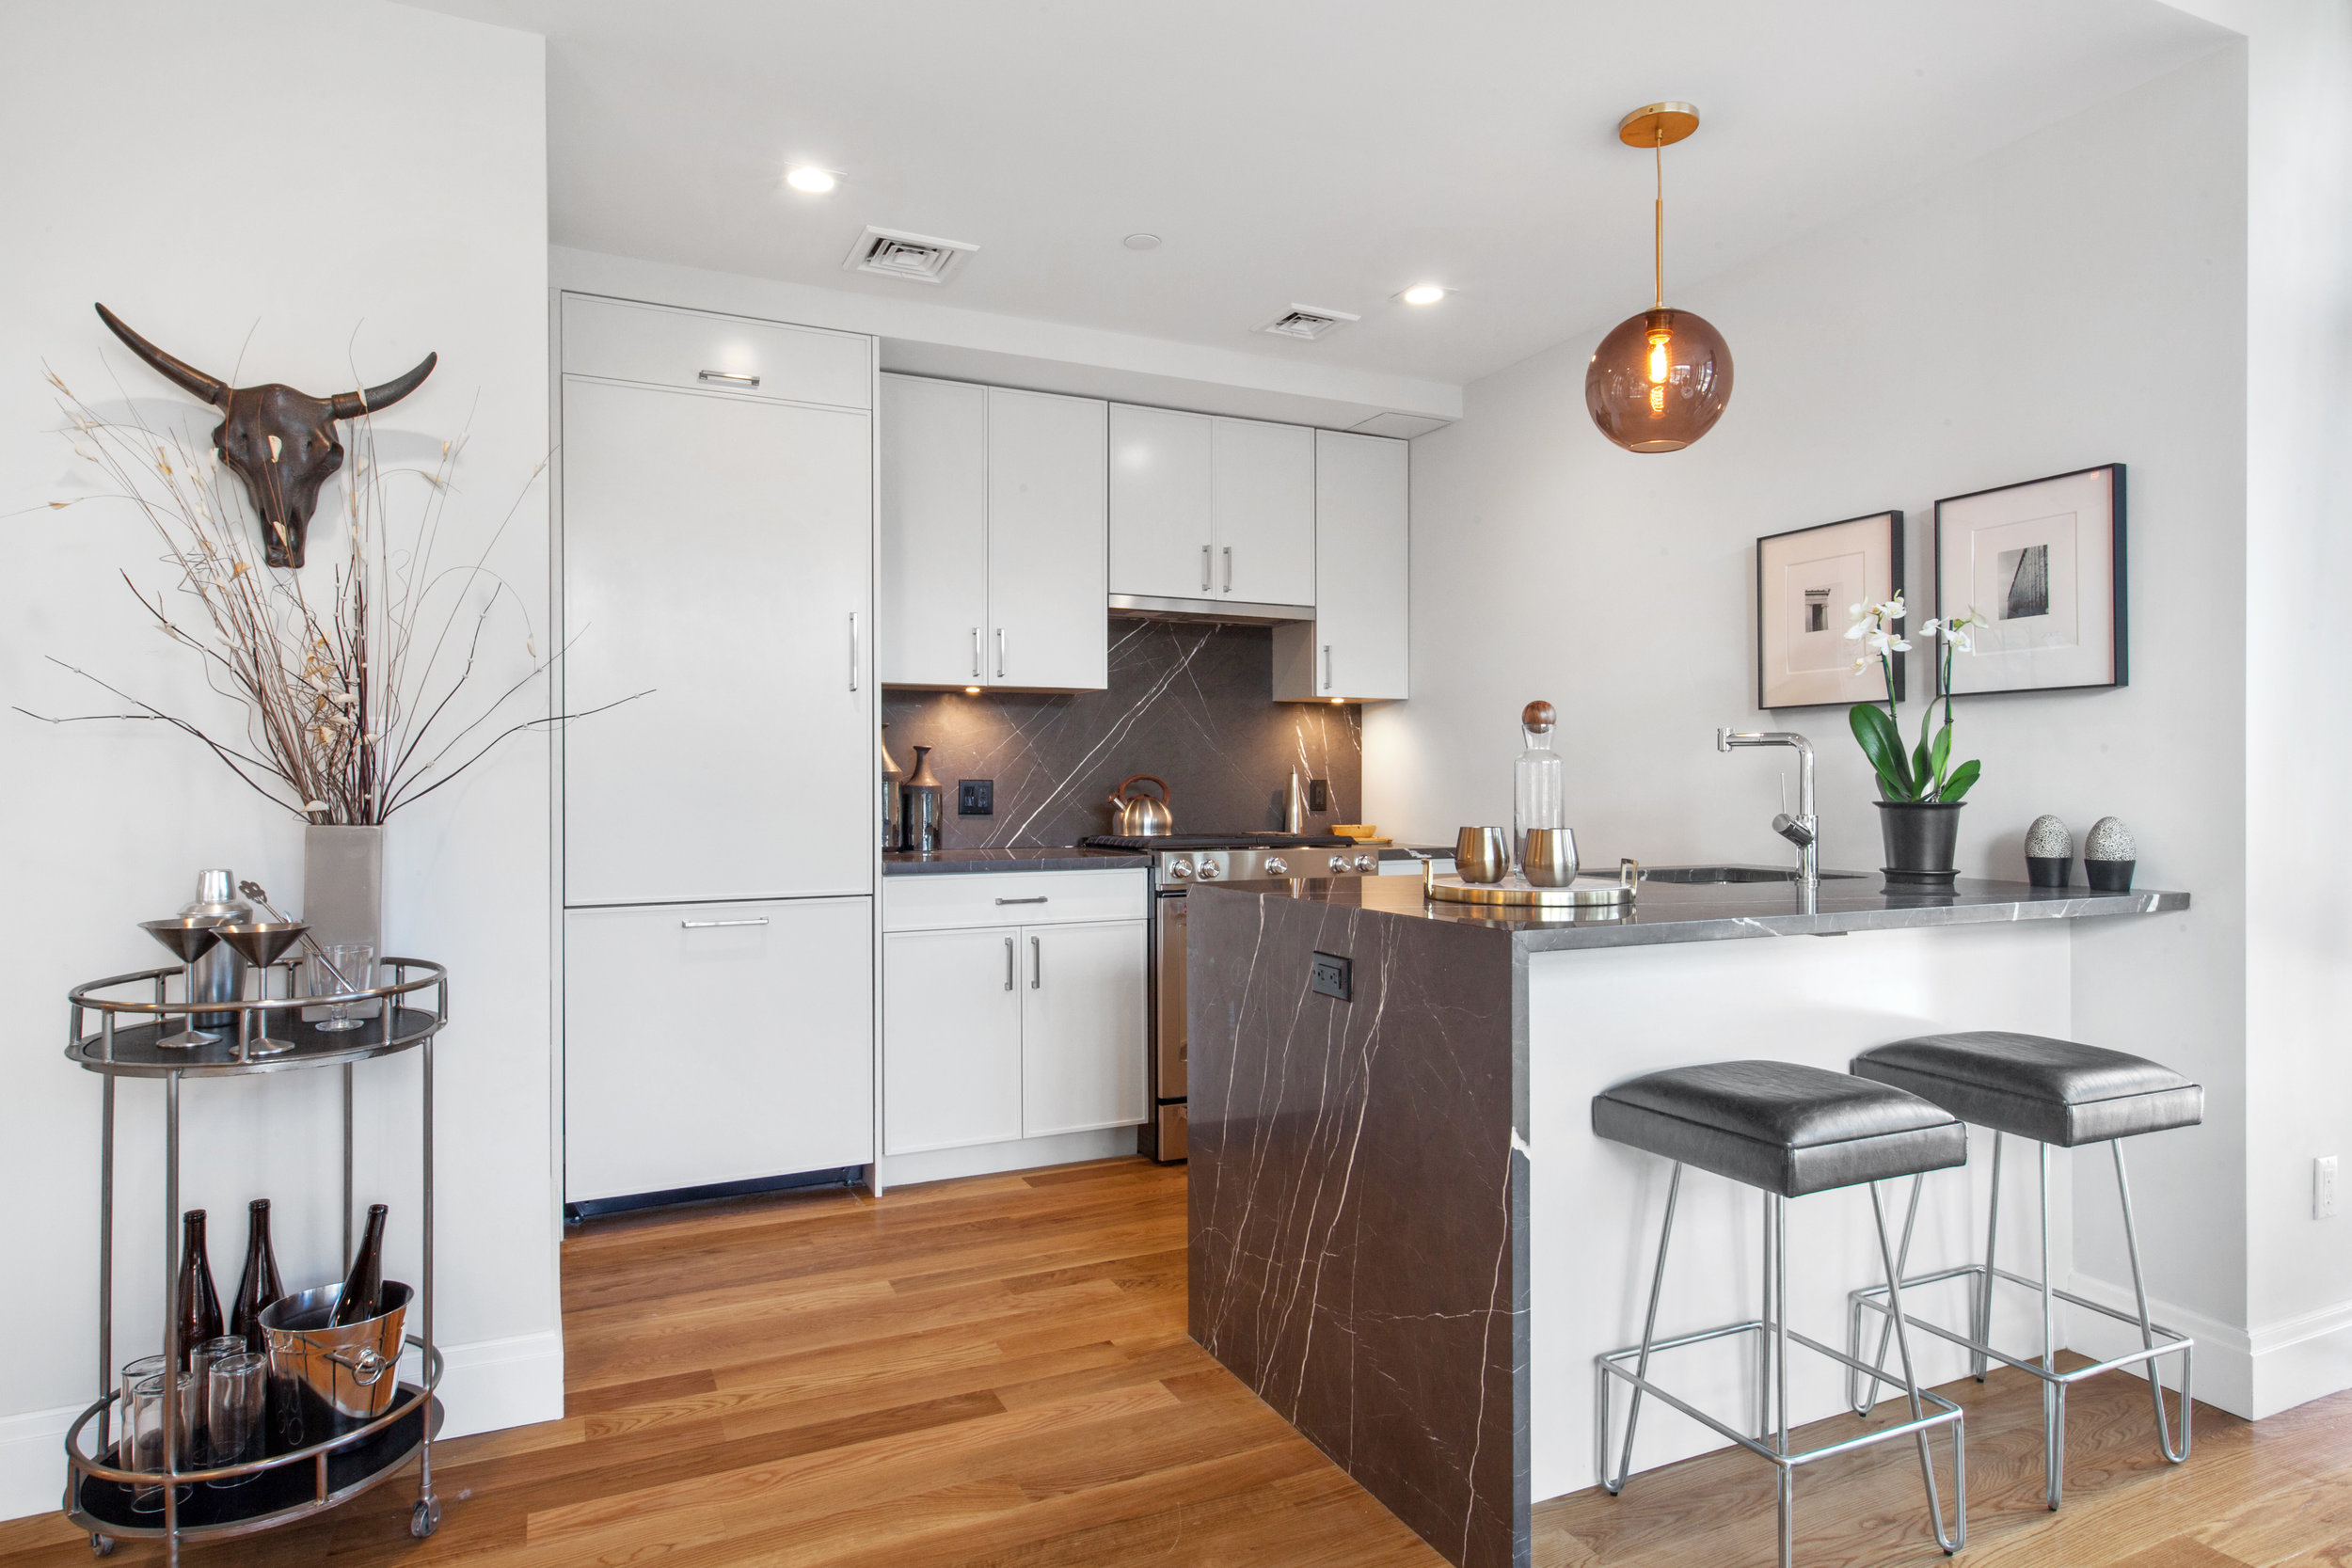 554 Fourth Launches SalesIn Brooklyn's Park Slope